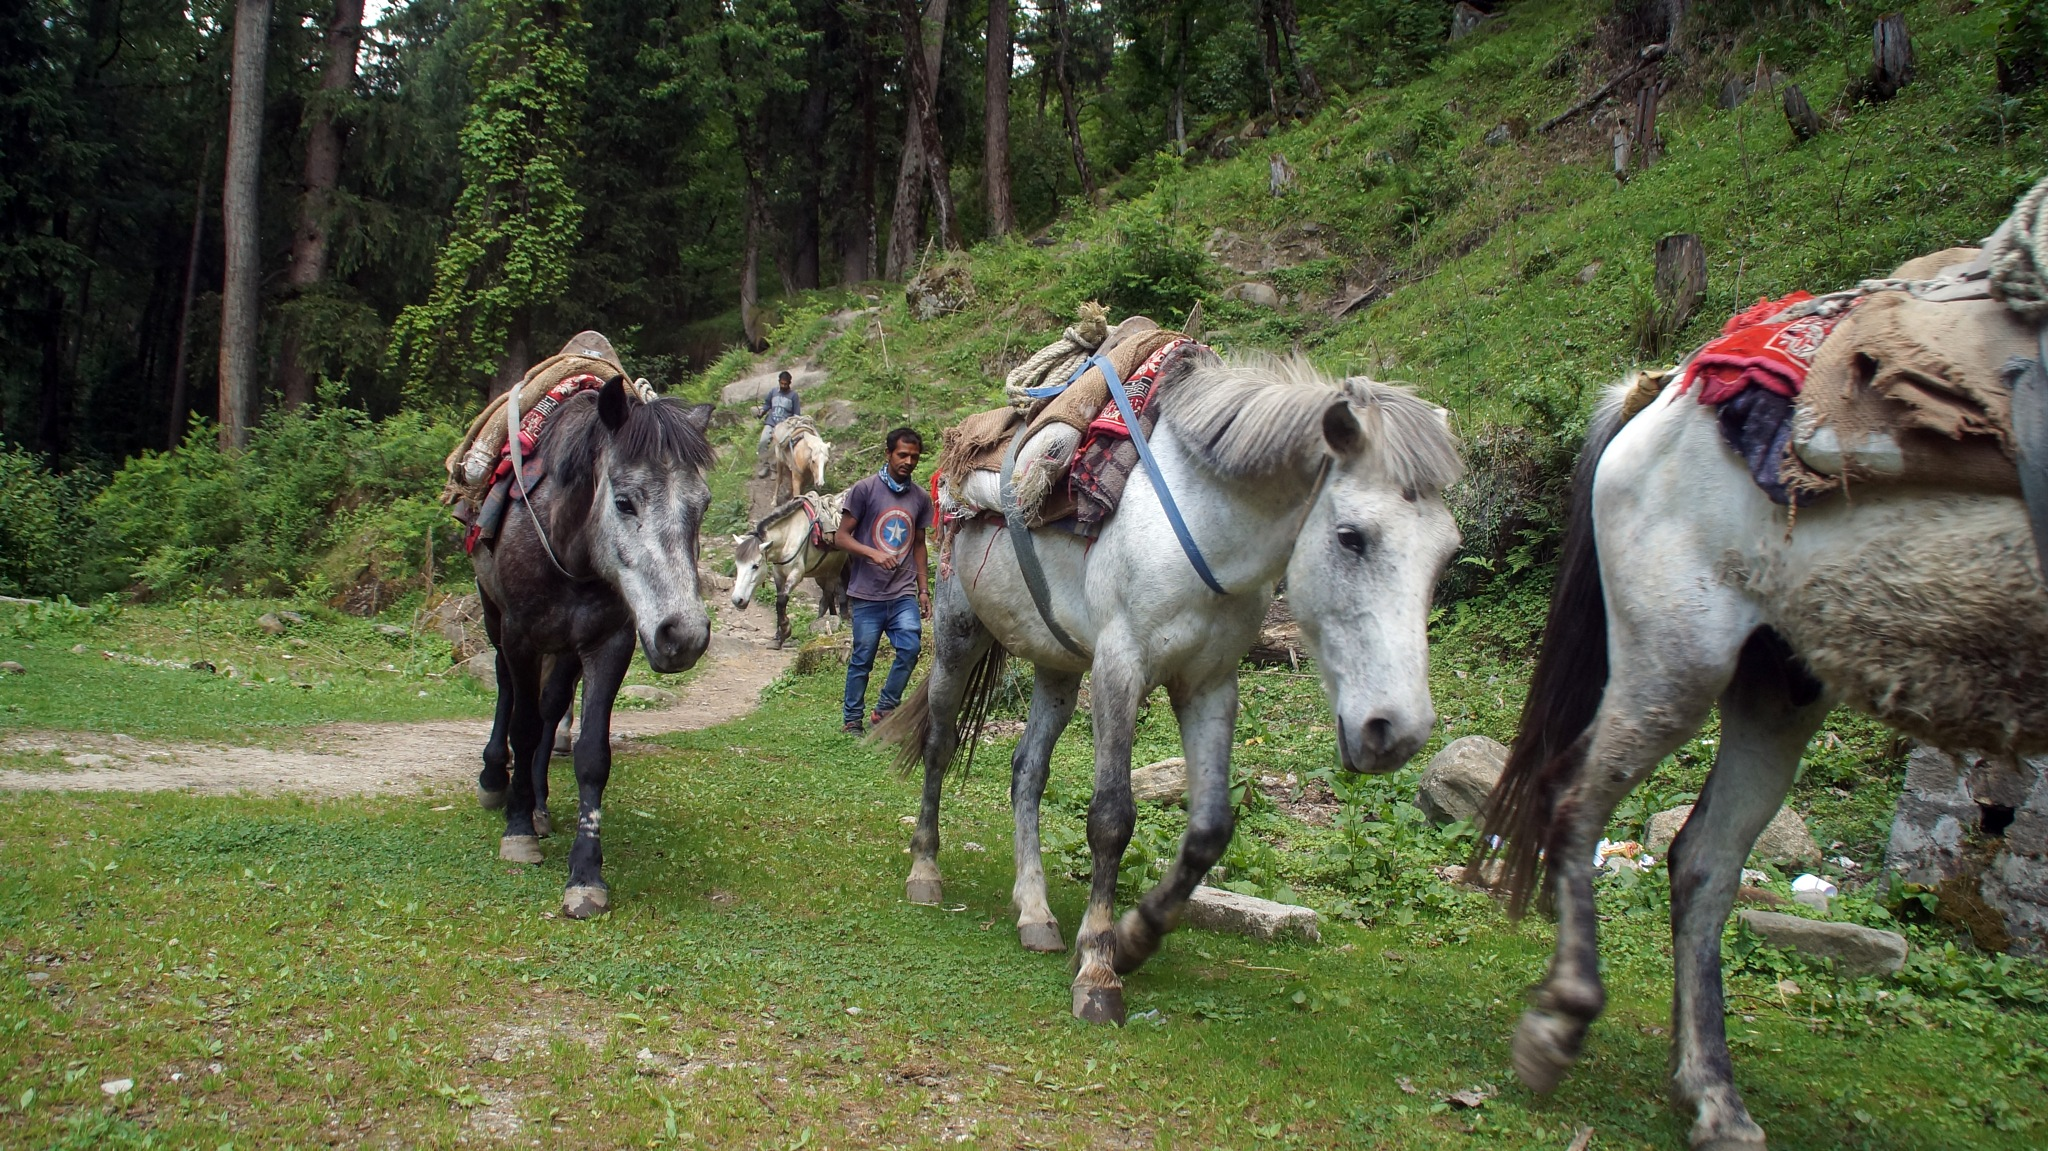 Horses coming down from the mountains in Parvati Valley, India 2018 by lars.erlandsson.9